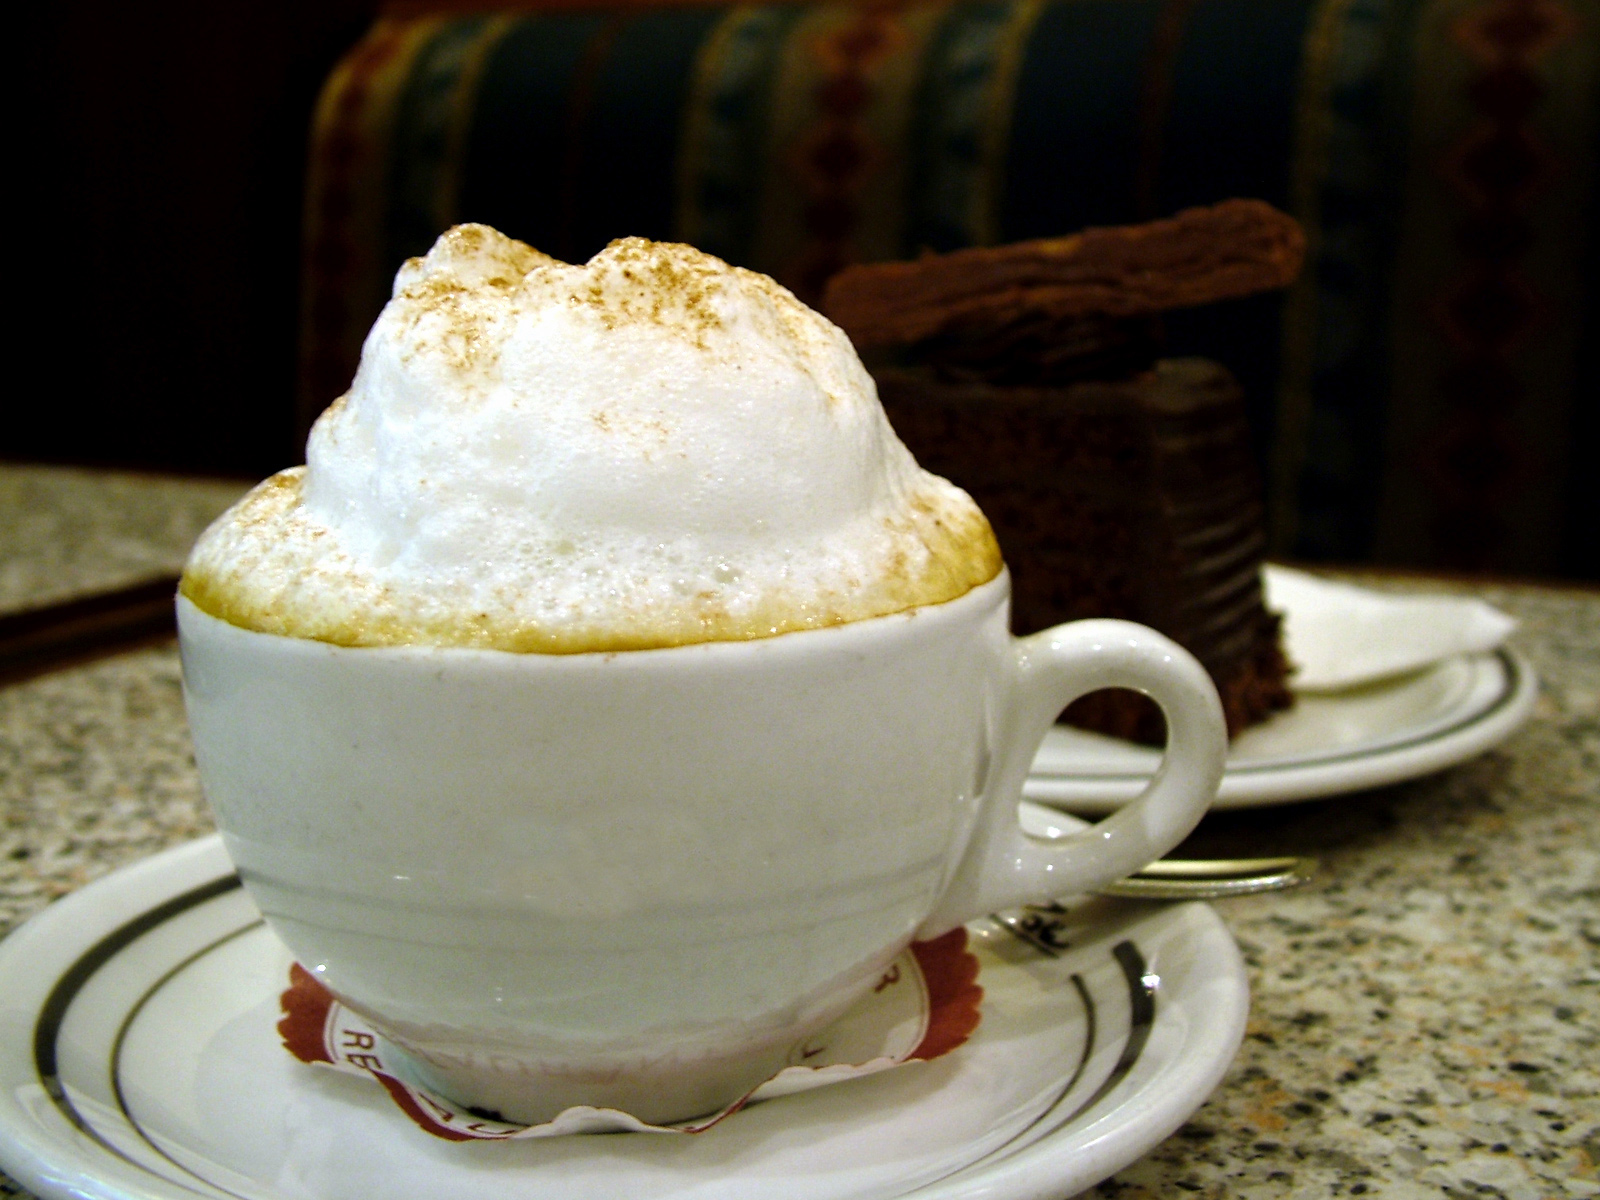 http://upload.wikimedia.org/wikipedia/commons/4/4a/Cup_of_Coffee_with_foam.jpg